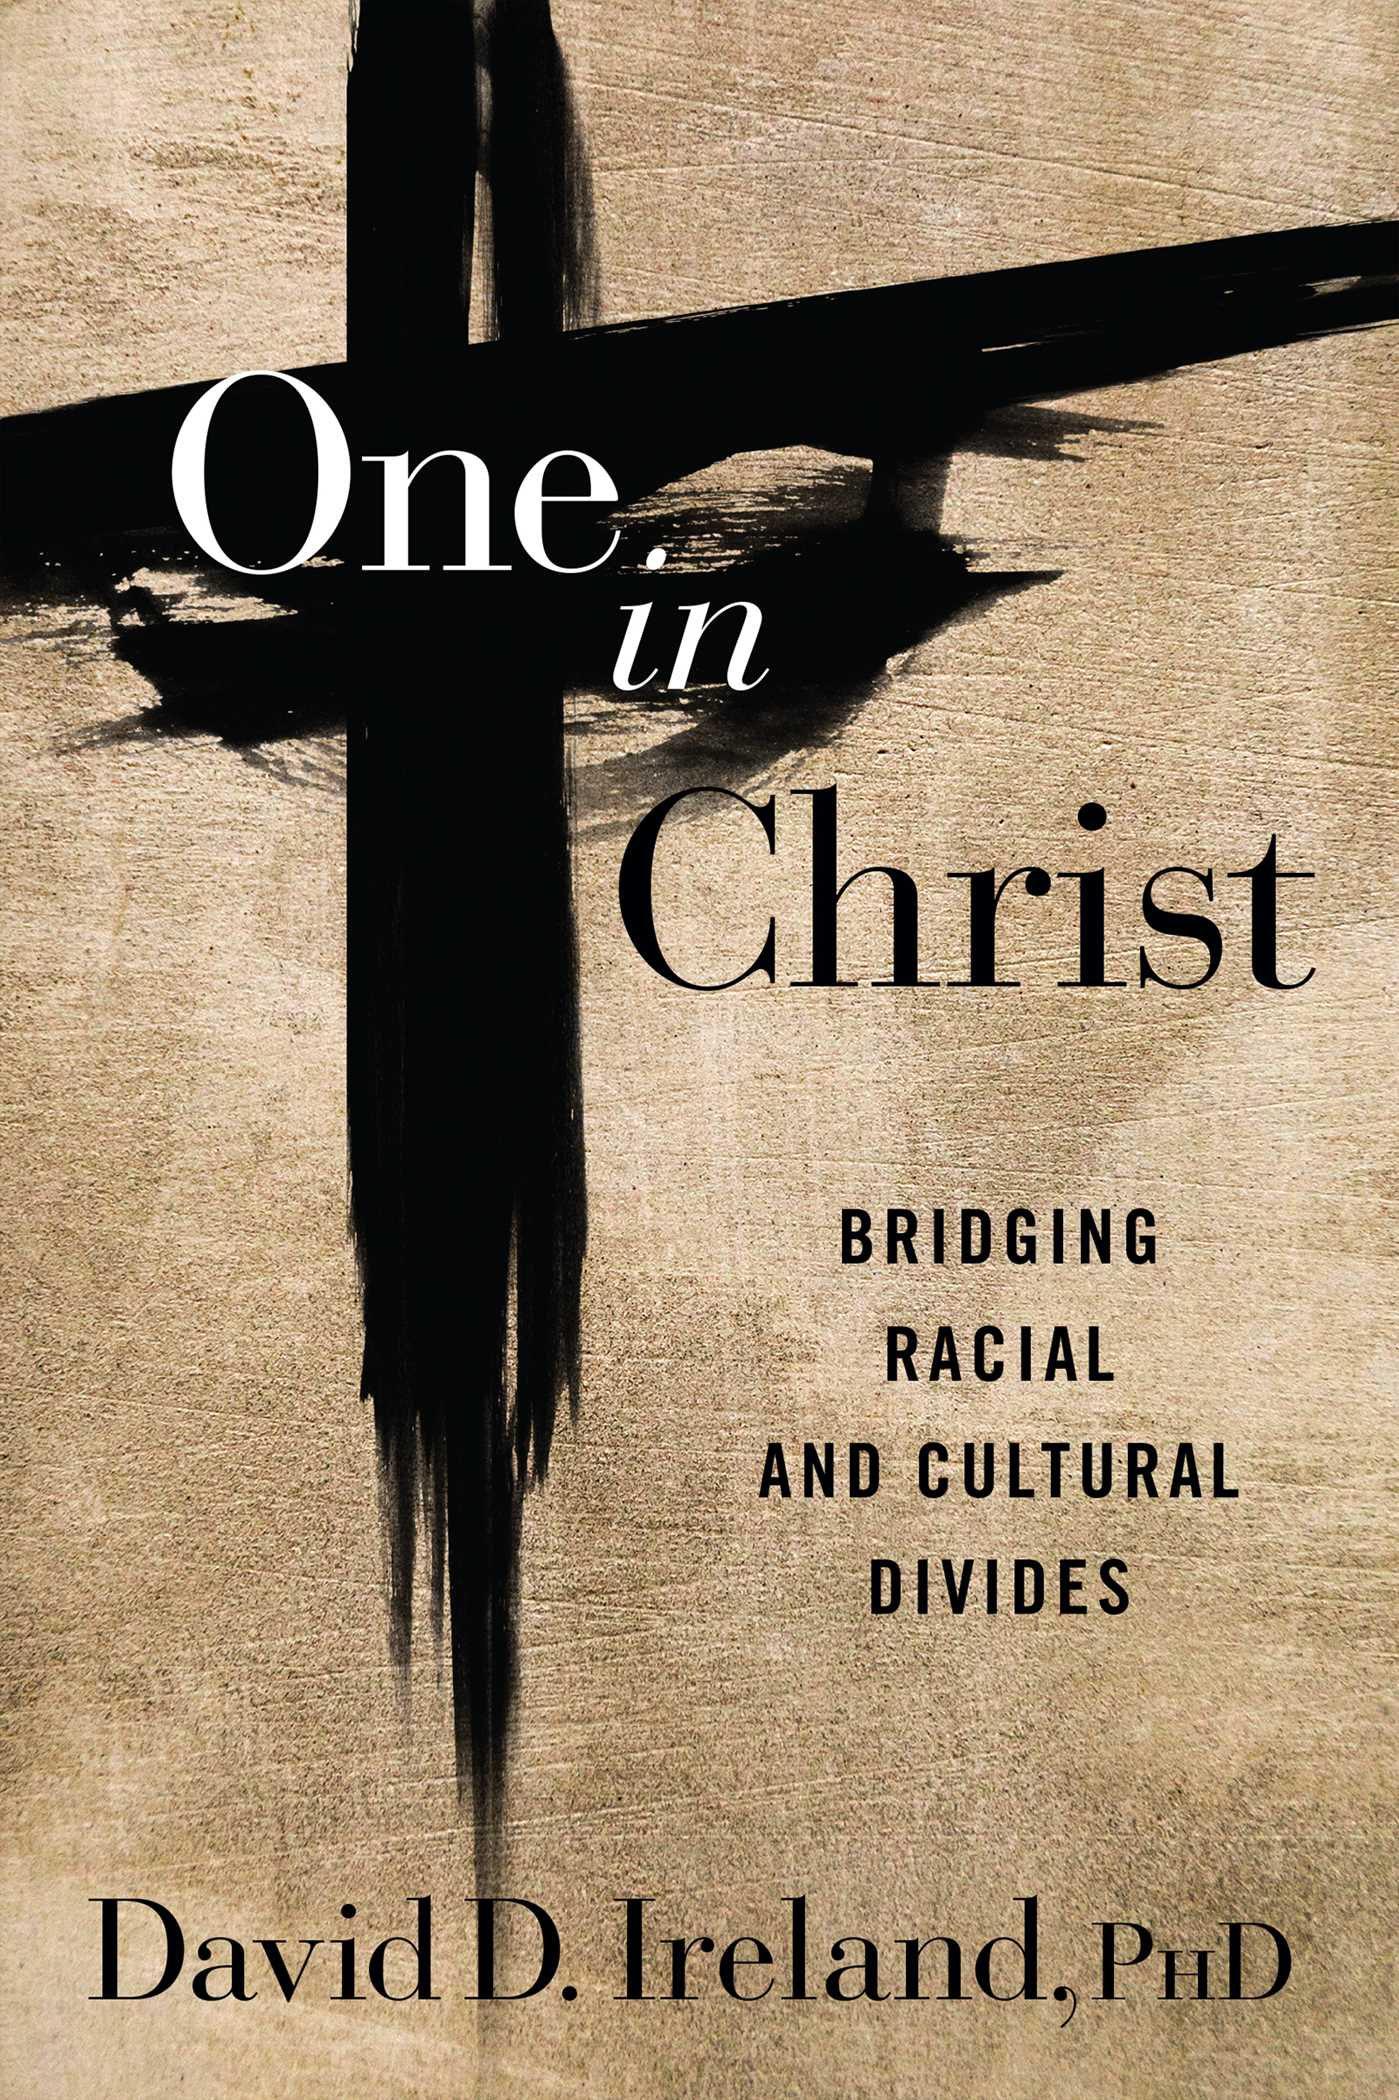 One in christ 9781621576914 hr